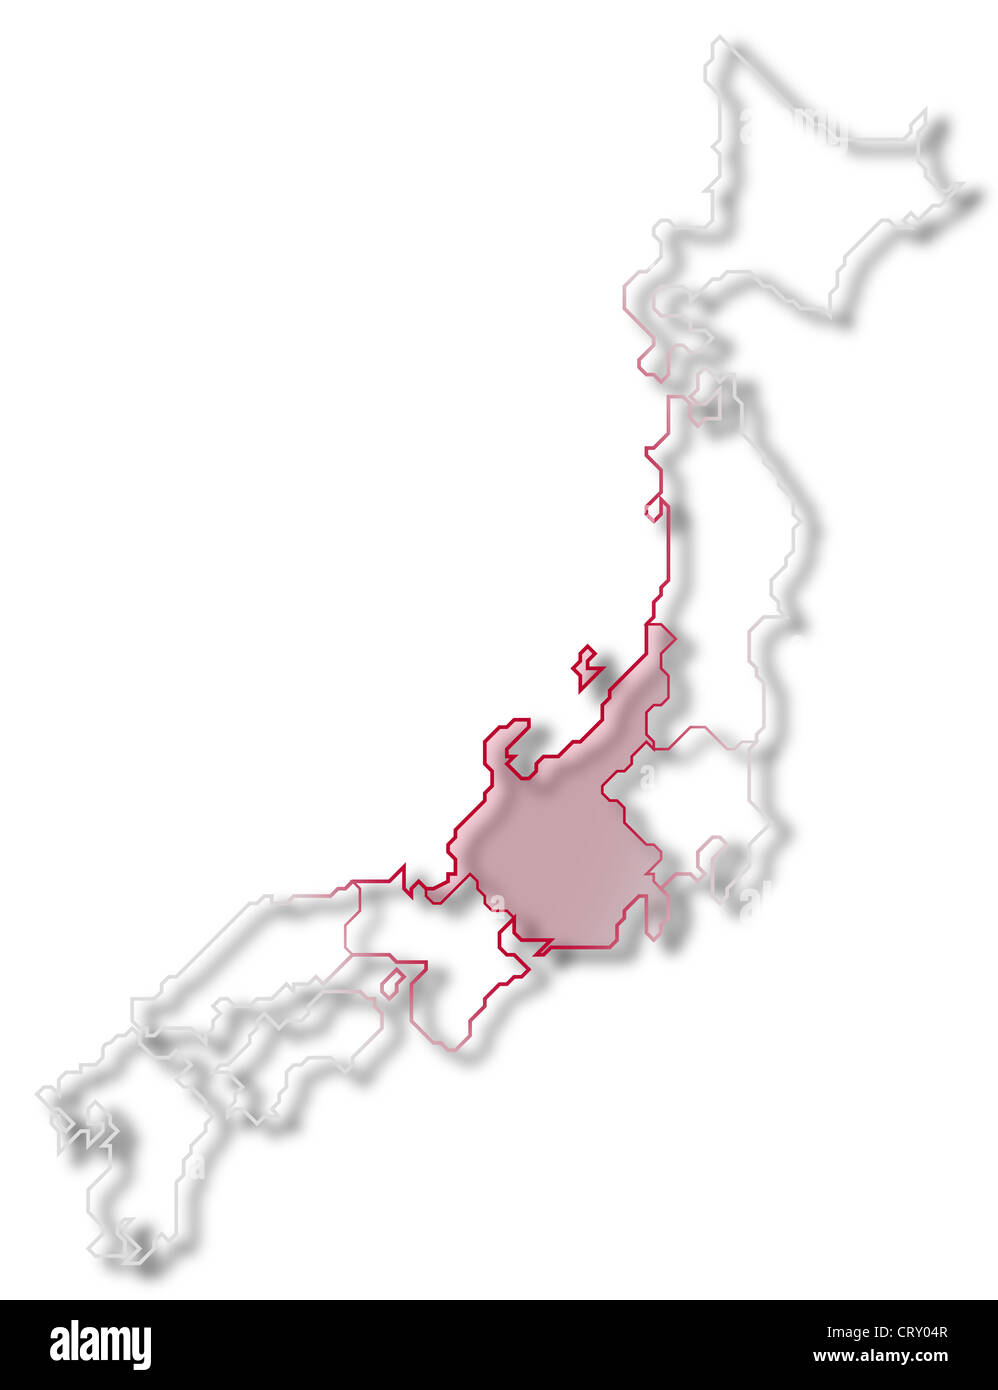 Japan Map Regions.Political Map Of Japan With The Several Regions Where Chubu Is Stock